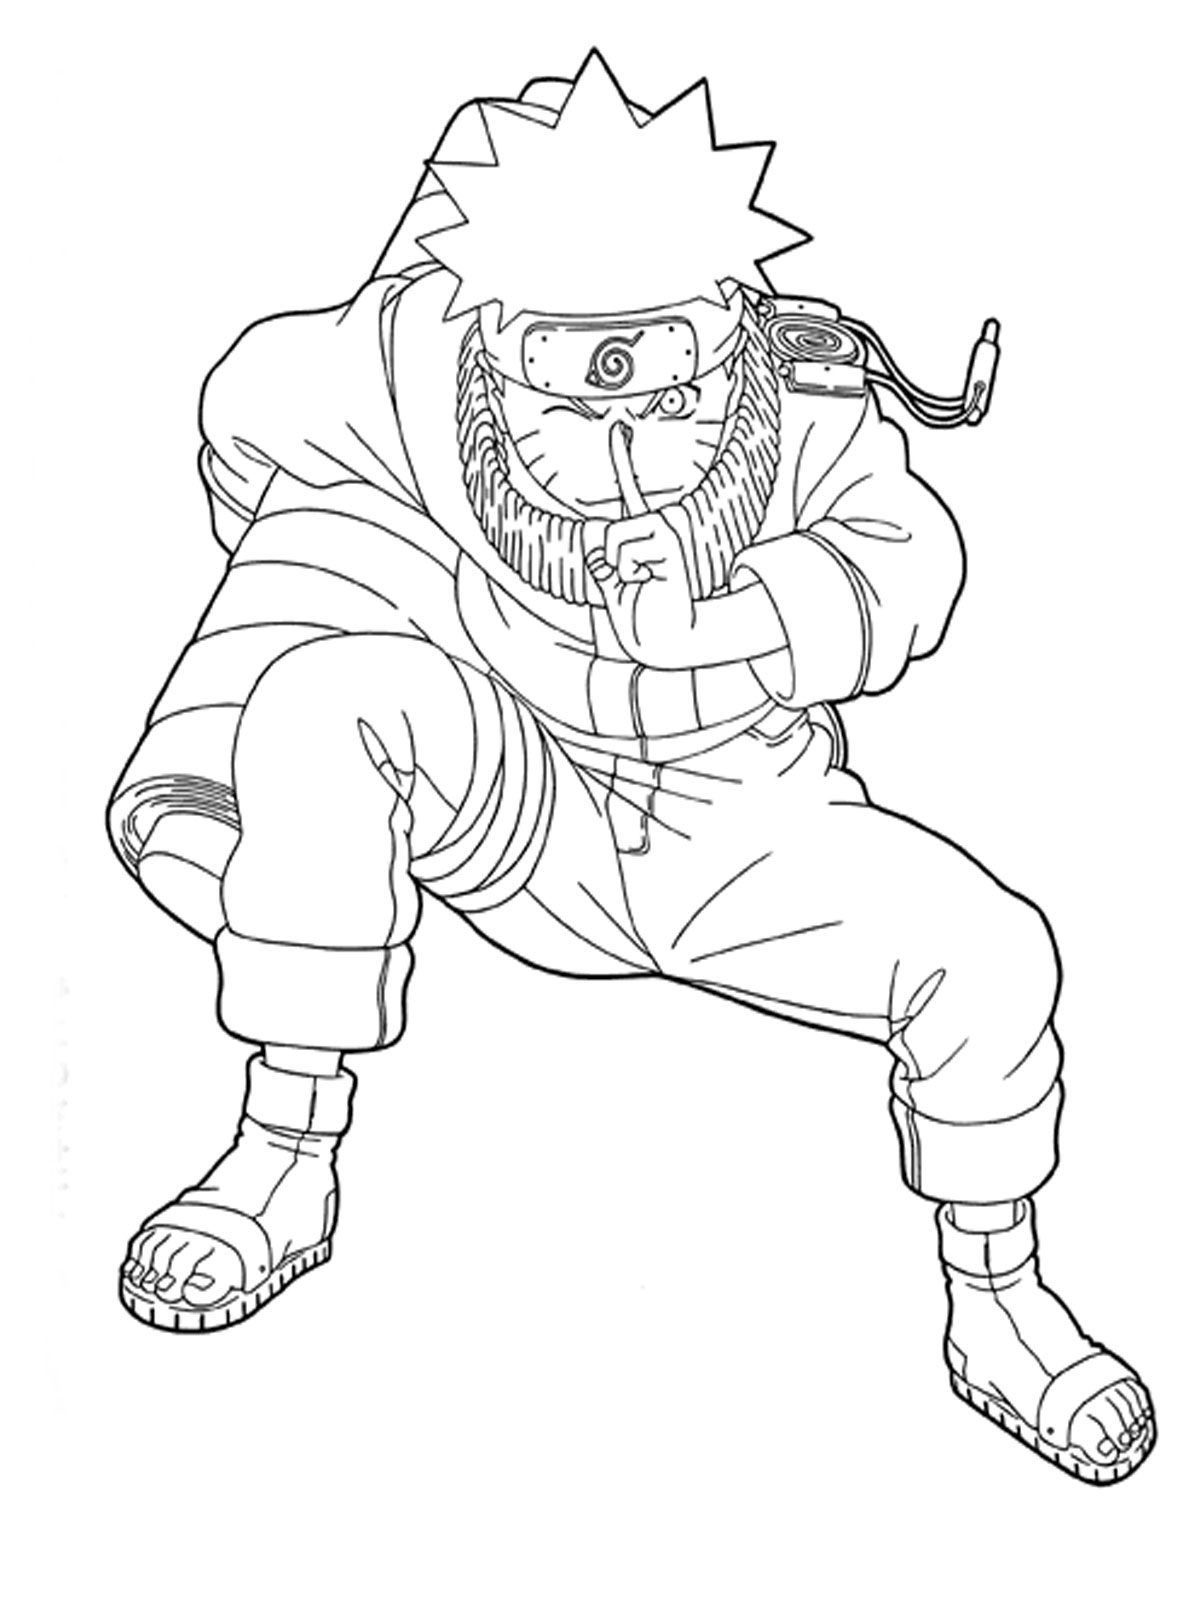 naruto coloring images printable naruto coloring pages to get your kids occupied naruto coloring images